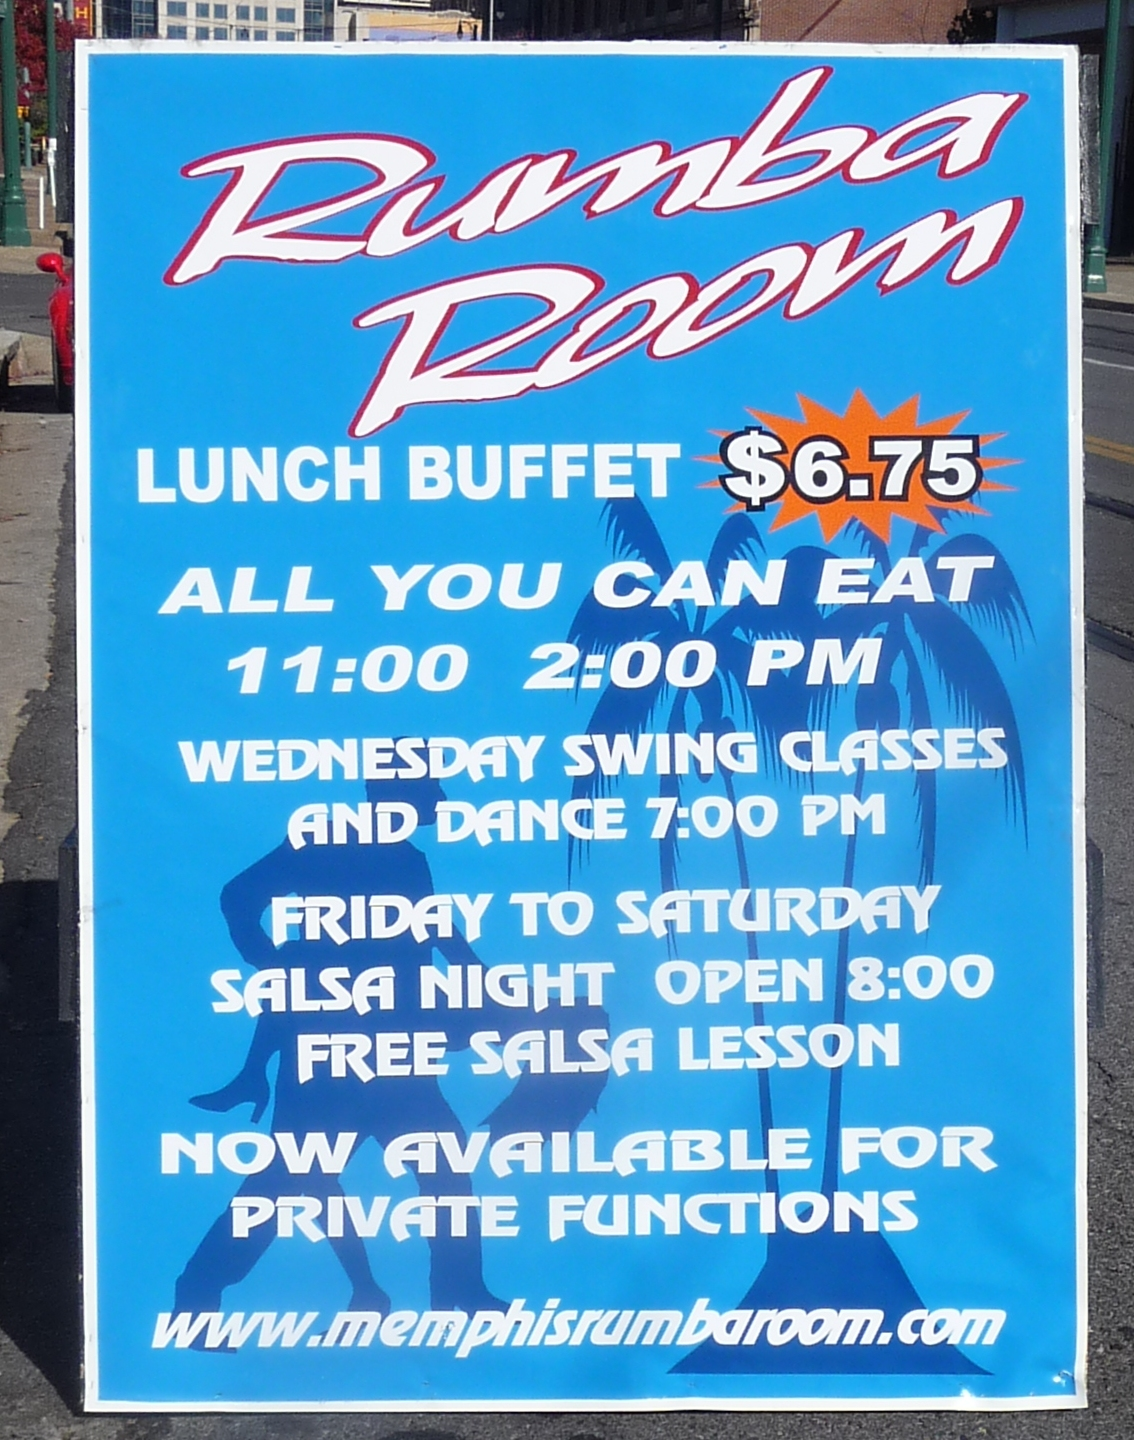 Excellent Lunch Buffet At Rumba Room Trolley Info For